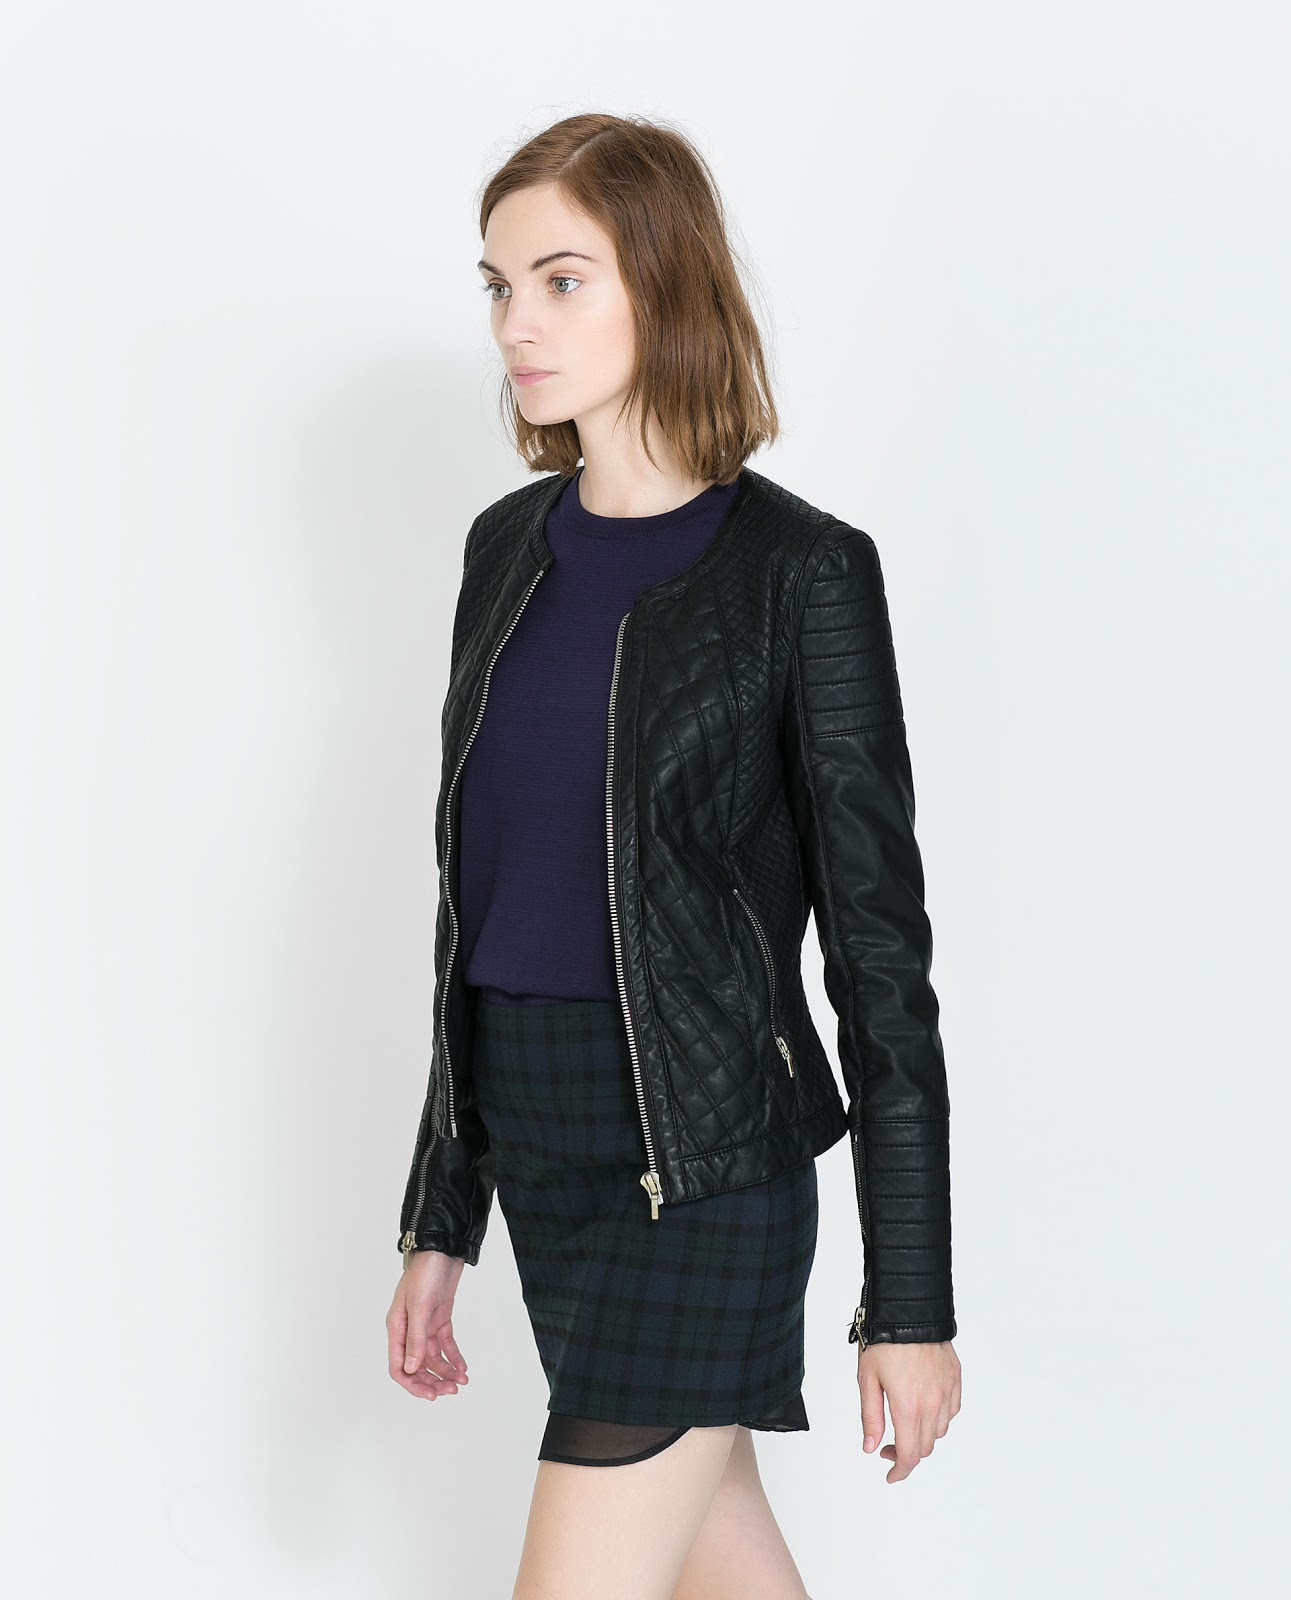 sevns look runs boutique medium xsmall sizes black jacket small faux zipper poly peplum top front quilted leather quilt spandex product